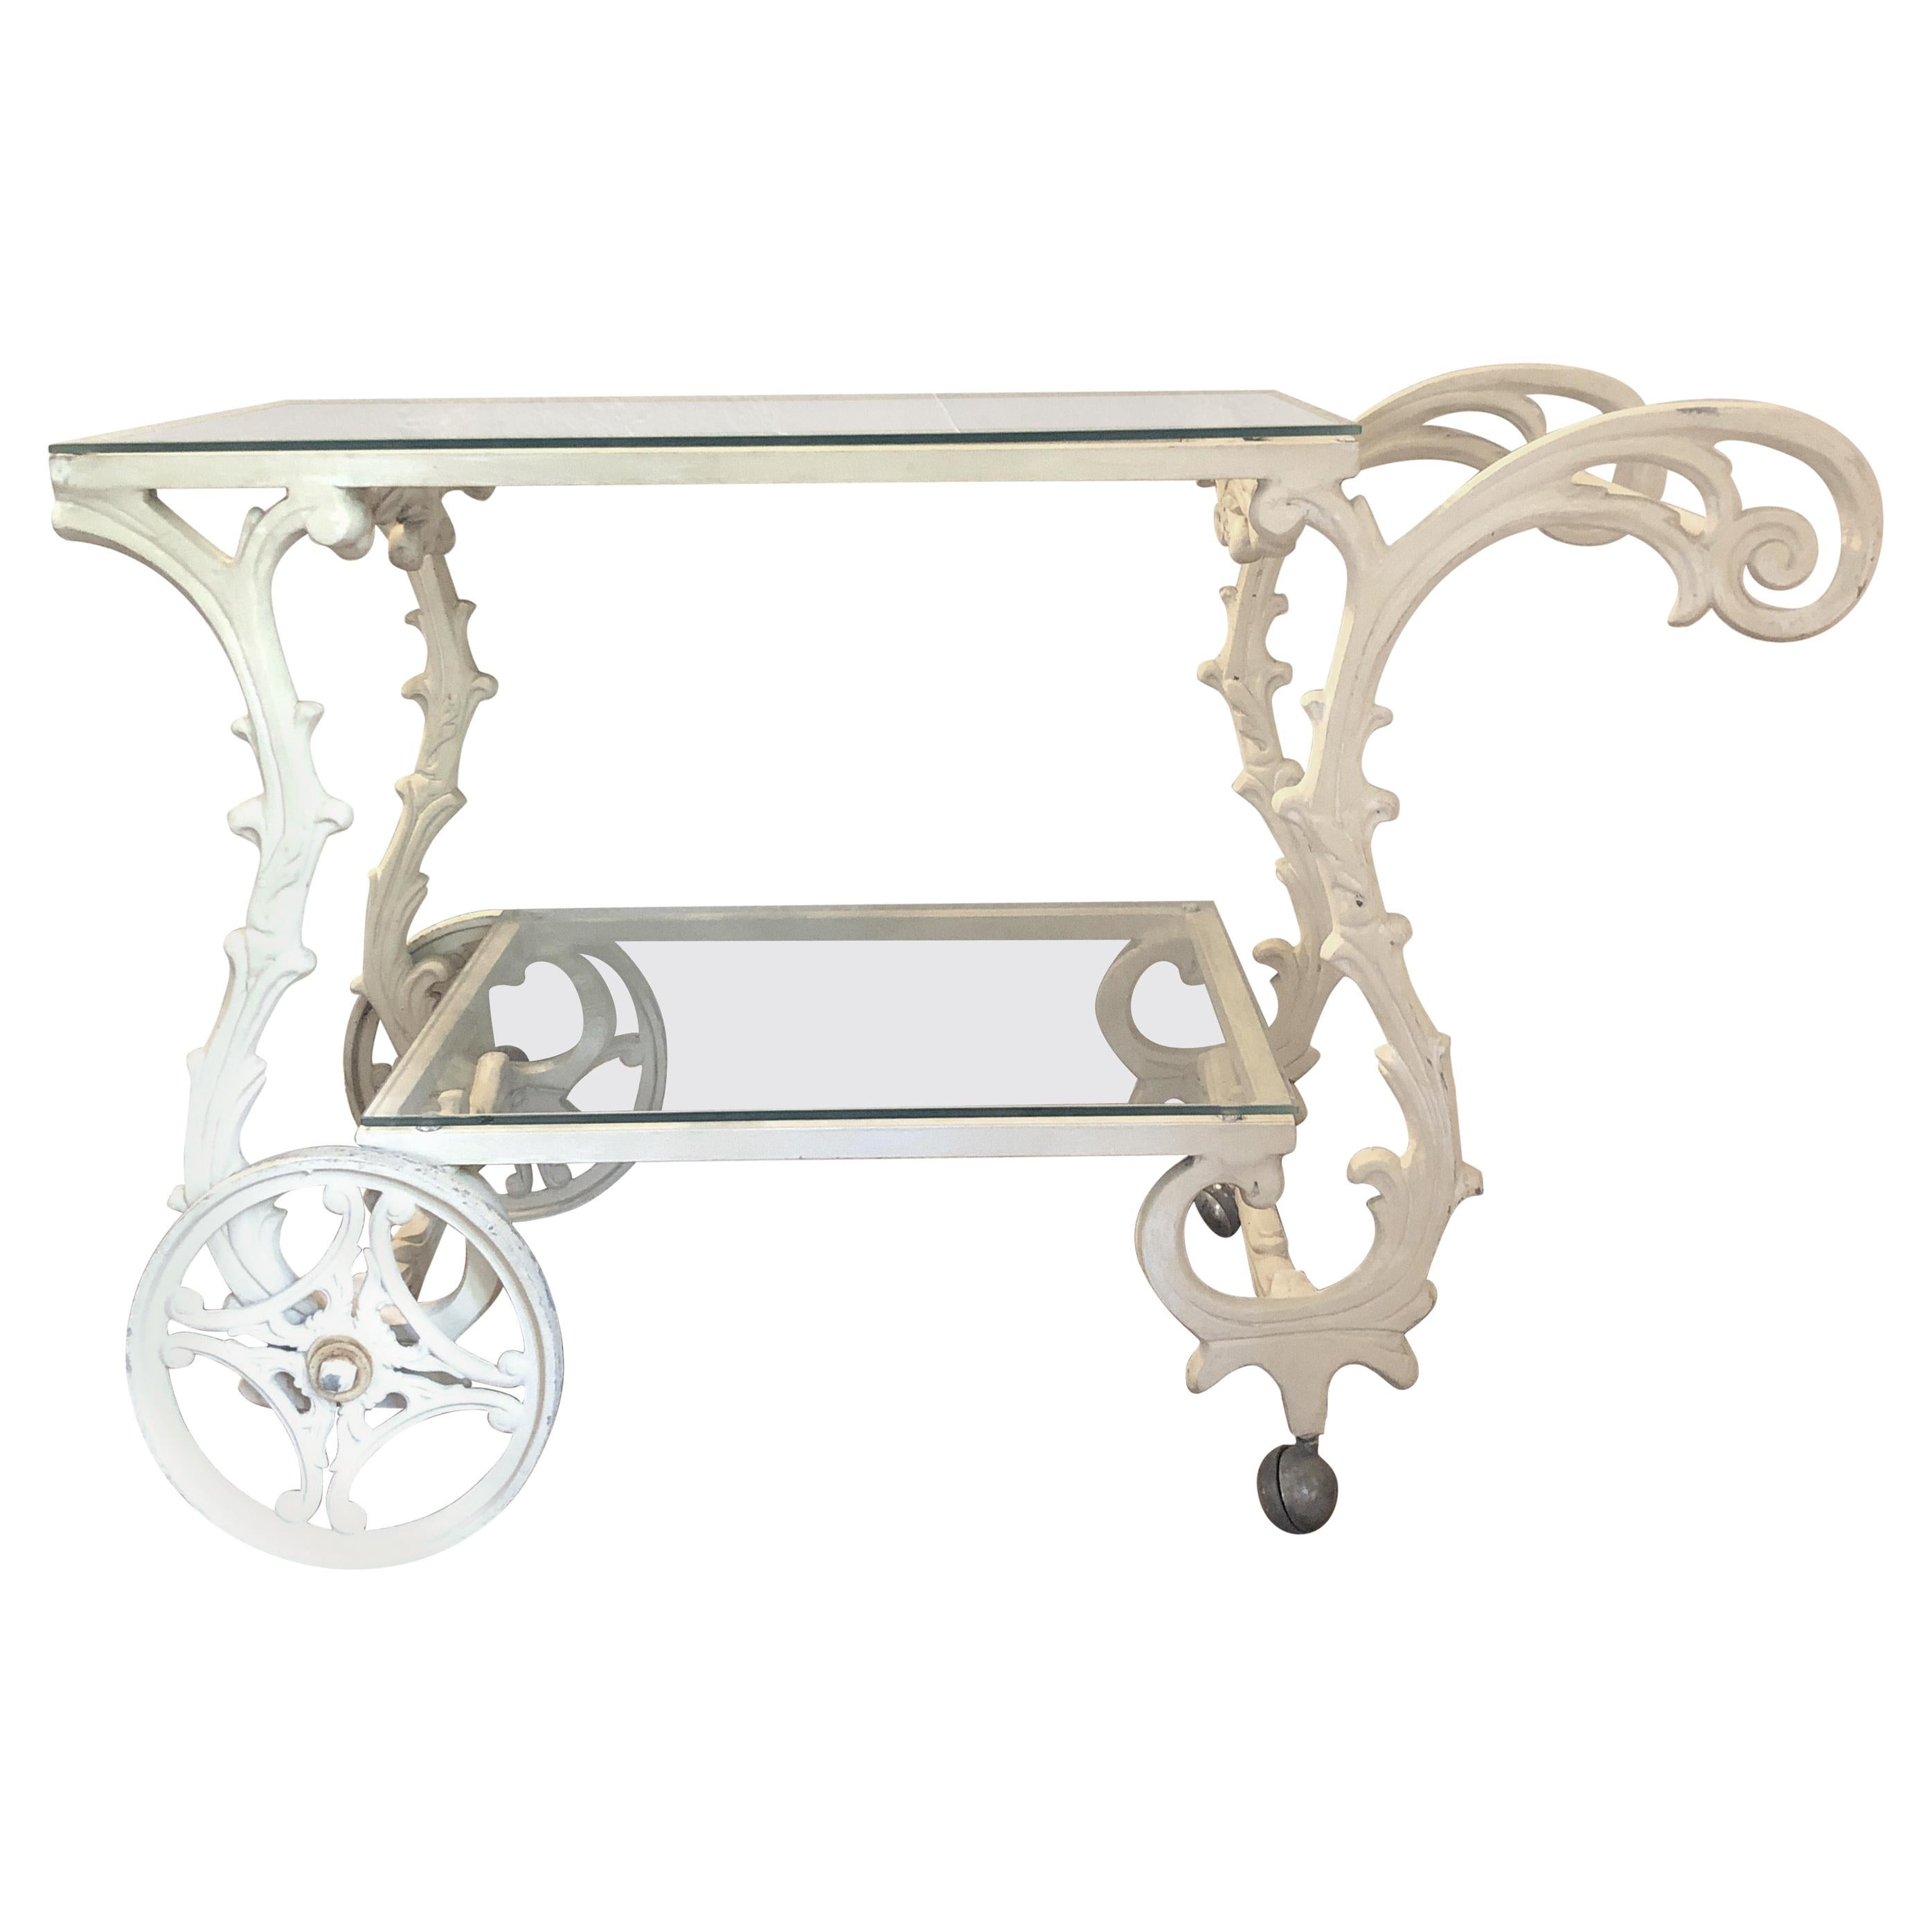 Ornate French Style Wrought Iron Patio/Garden Bar Cart Trolley W/Glass  Shelves